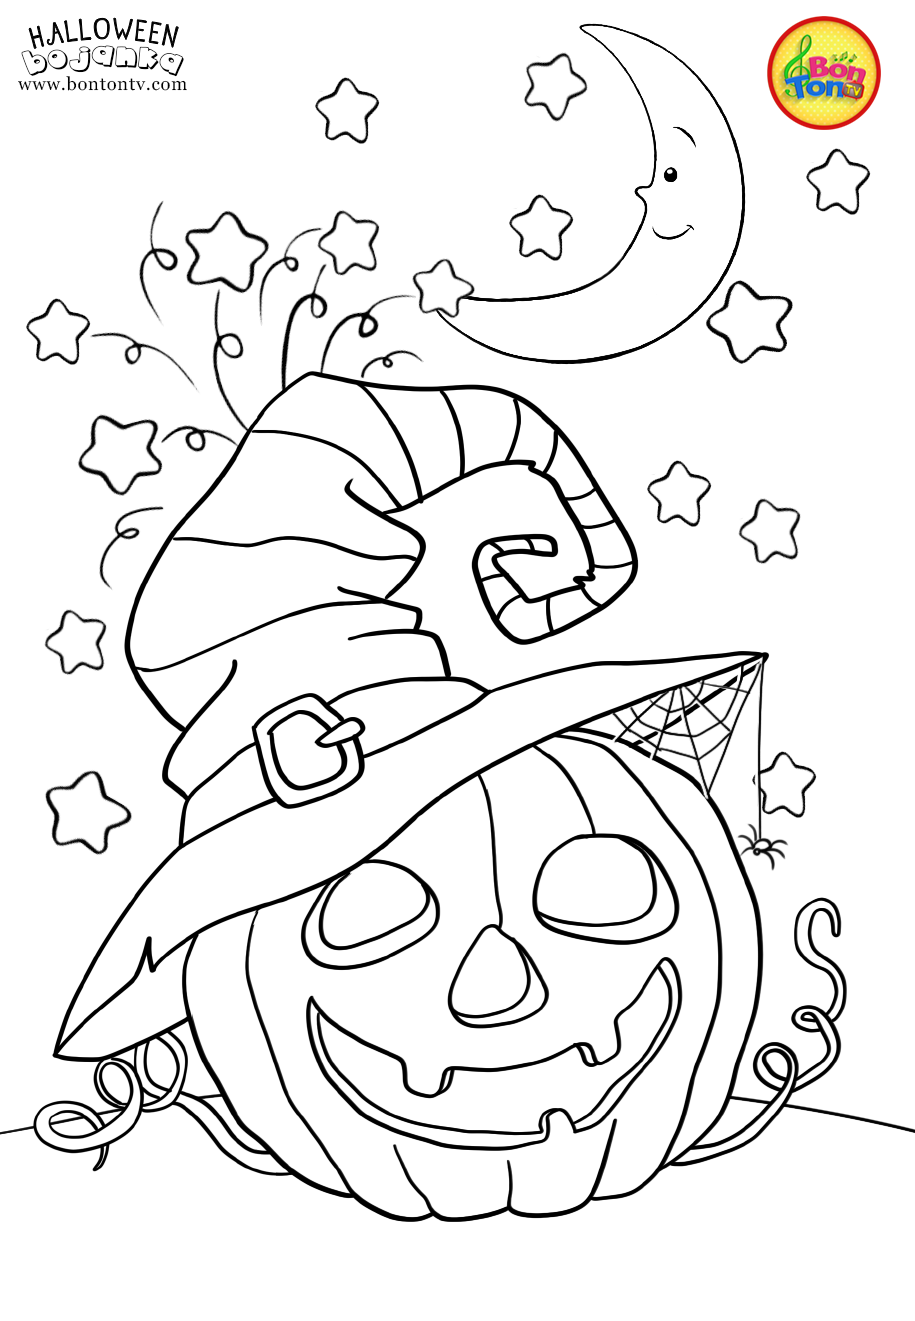 Latest Photographs Kids Coloring Books Thoughts Right Here Is The Fina In 2021 Halloween Coloring Book Free Halloween Coloring Pages Halloween Coloring Pages Printable